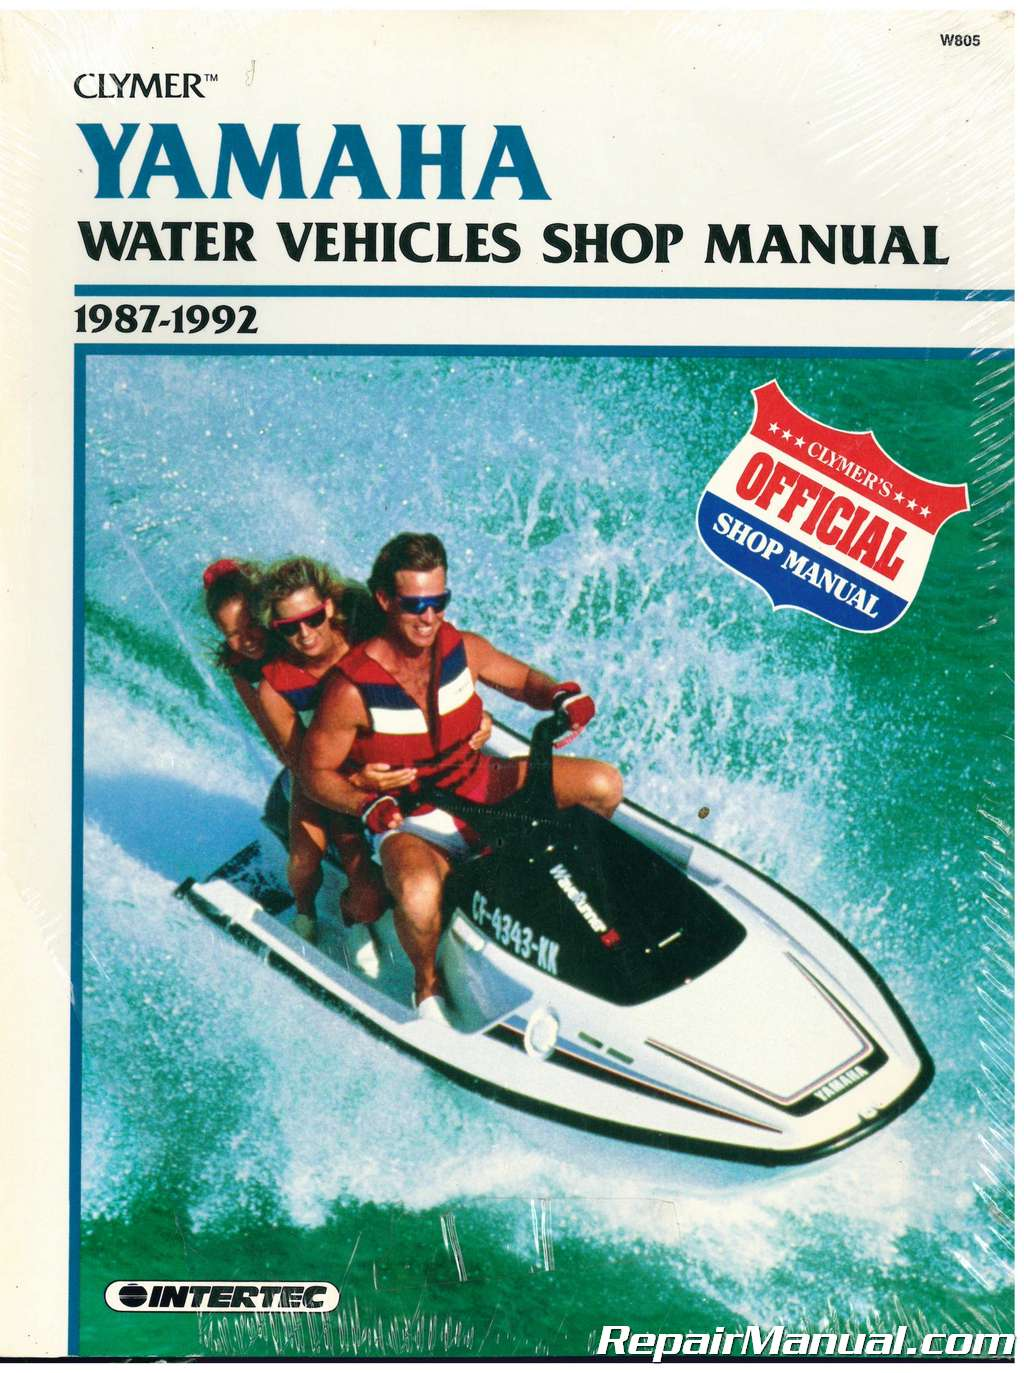 USED 1987-1992 Clymer Yamaha Waverunner Wavejammer Personal Watercraft  Repair Manual